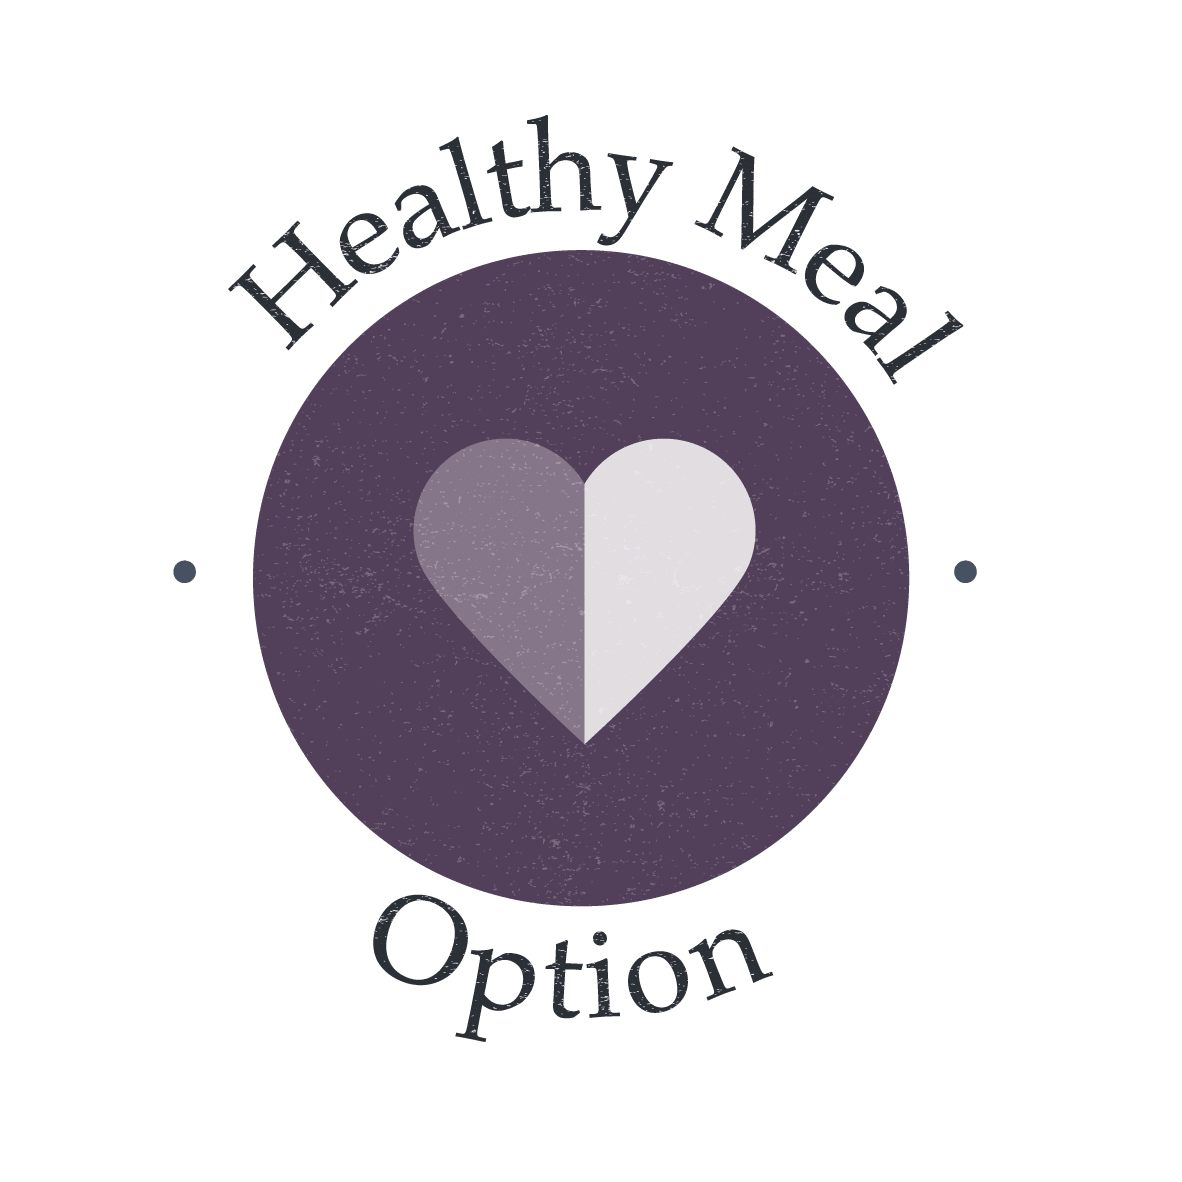 healthy option recipe